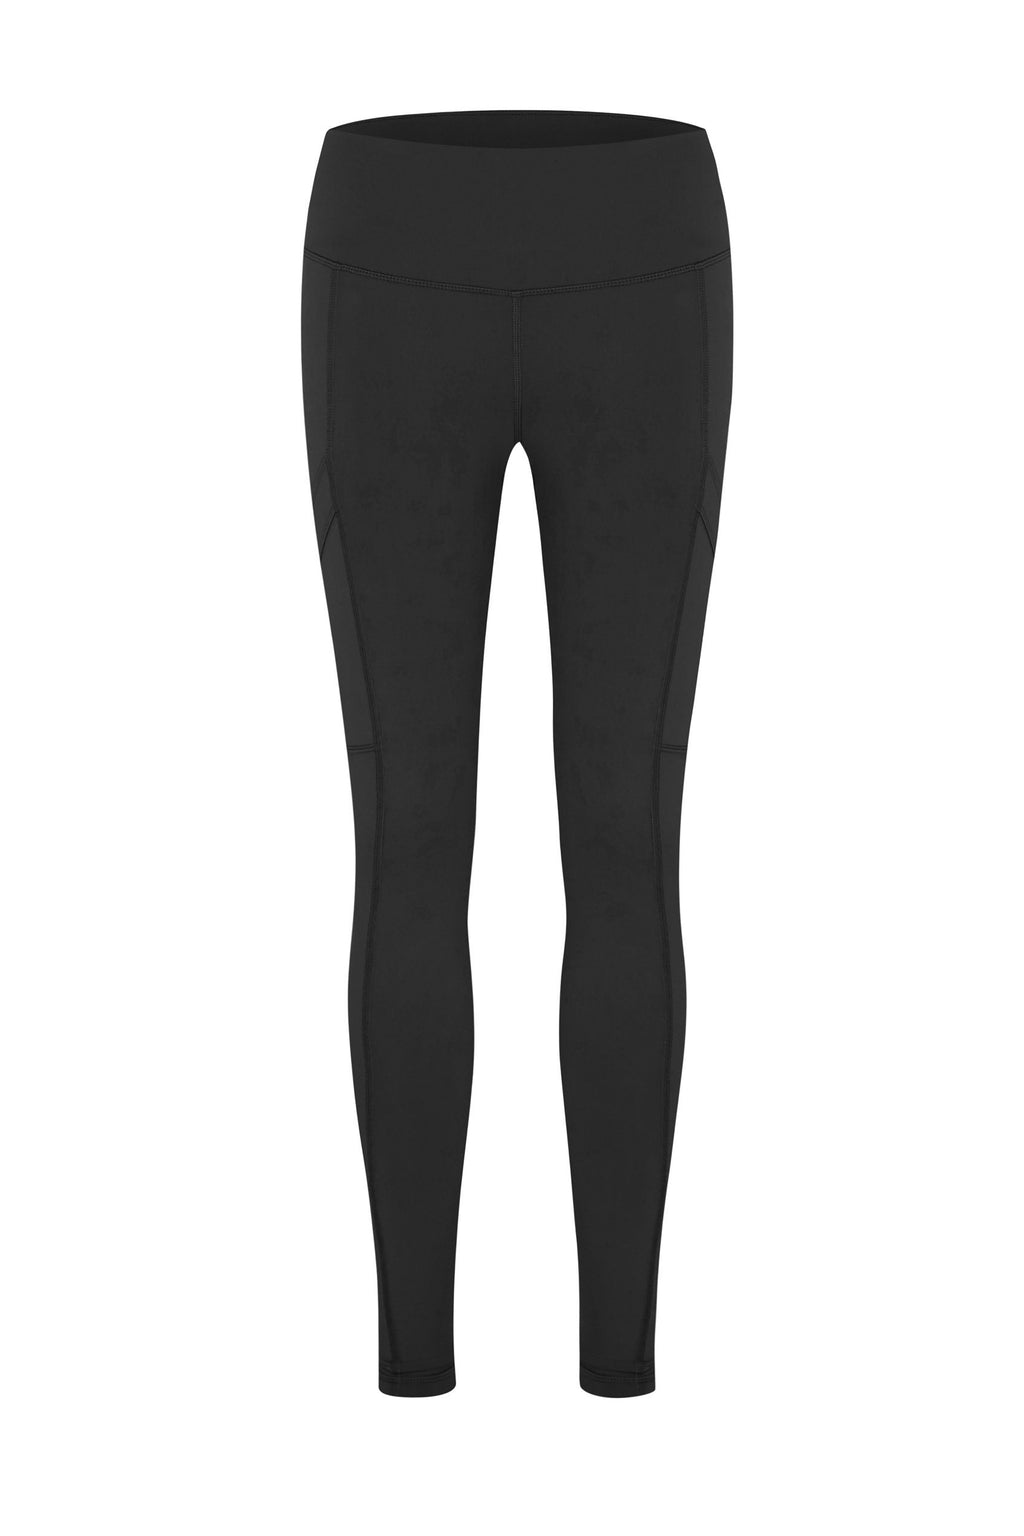 Tara pocket Full Length Tight - BLACK